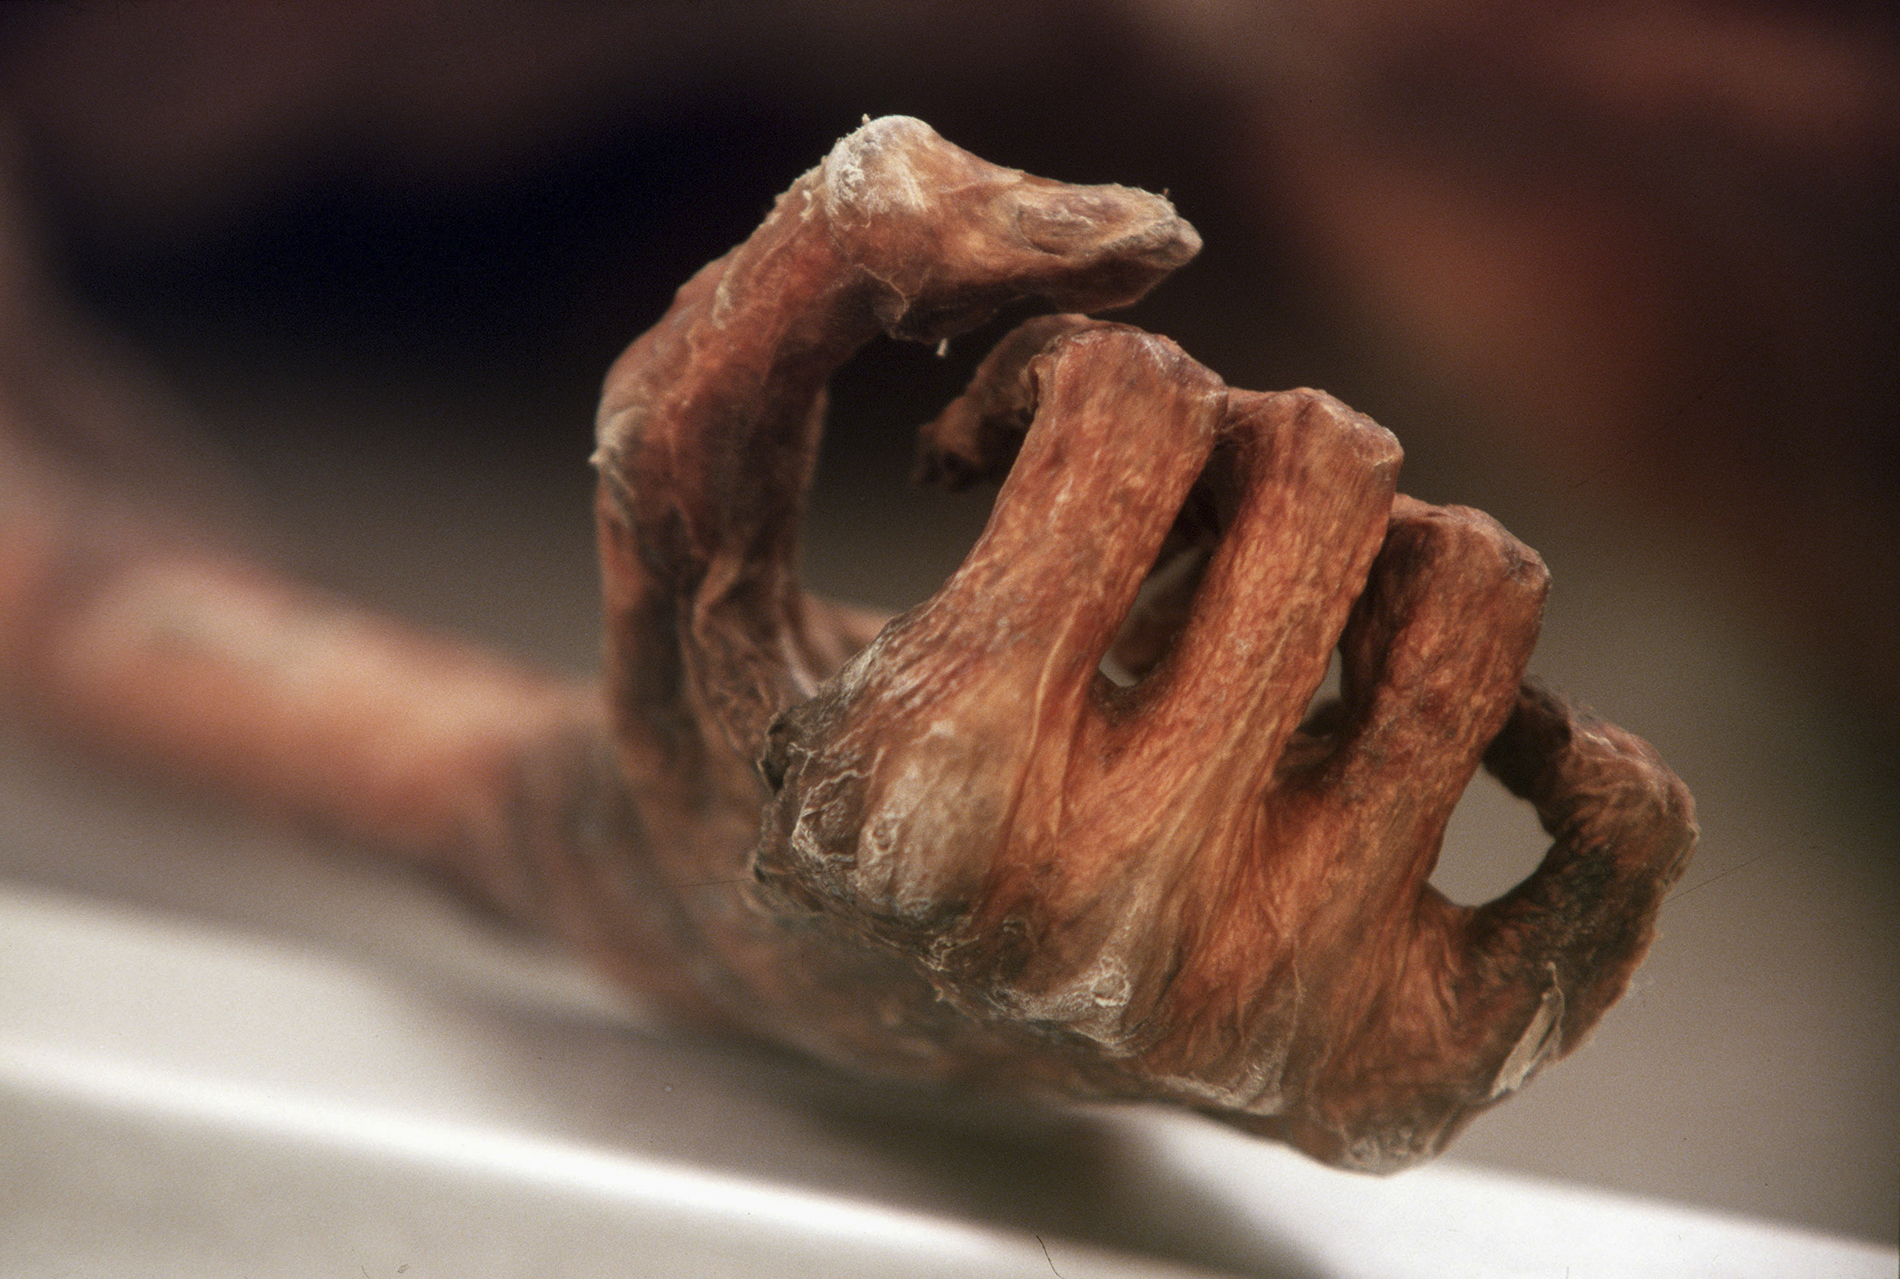 Ötzi the Iceman's Unfortunate Last Journey Possibly Uncovered